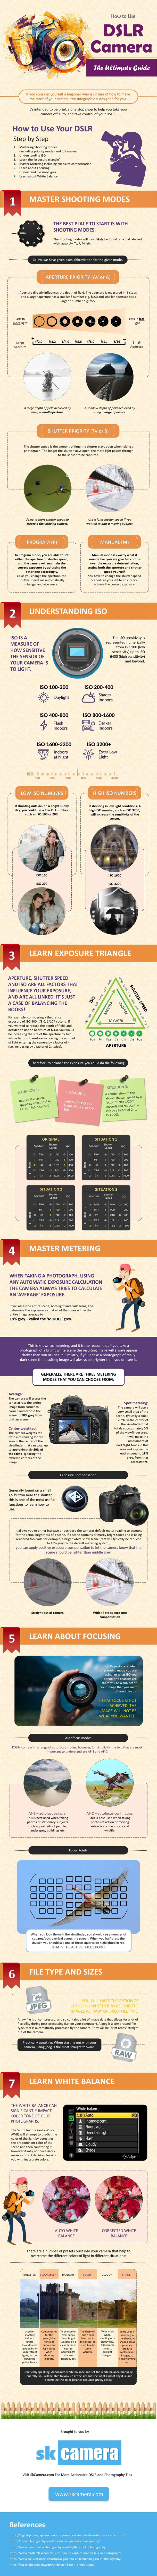 How to use DSLR Camera the Ultimate Guide